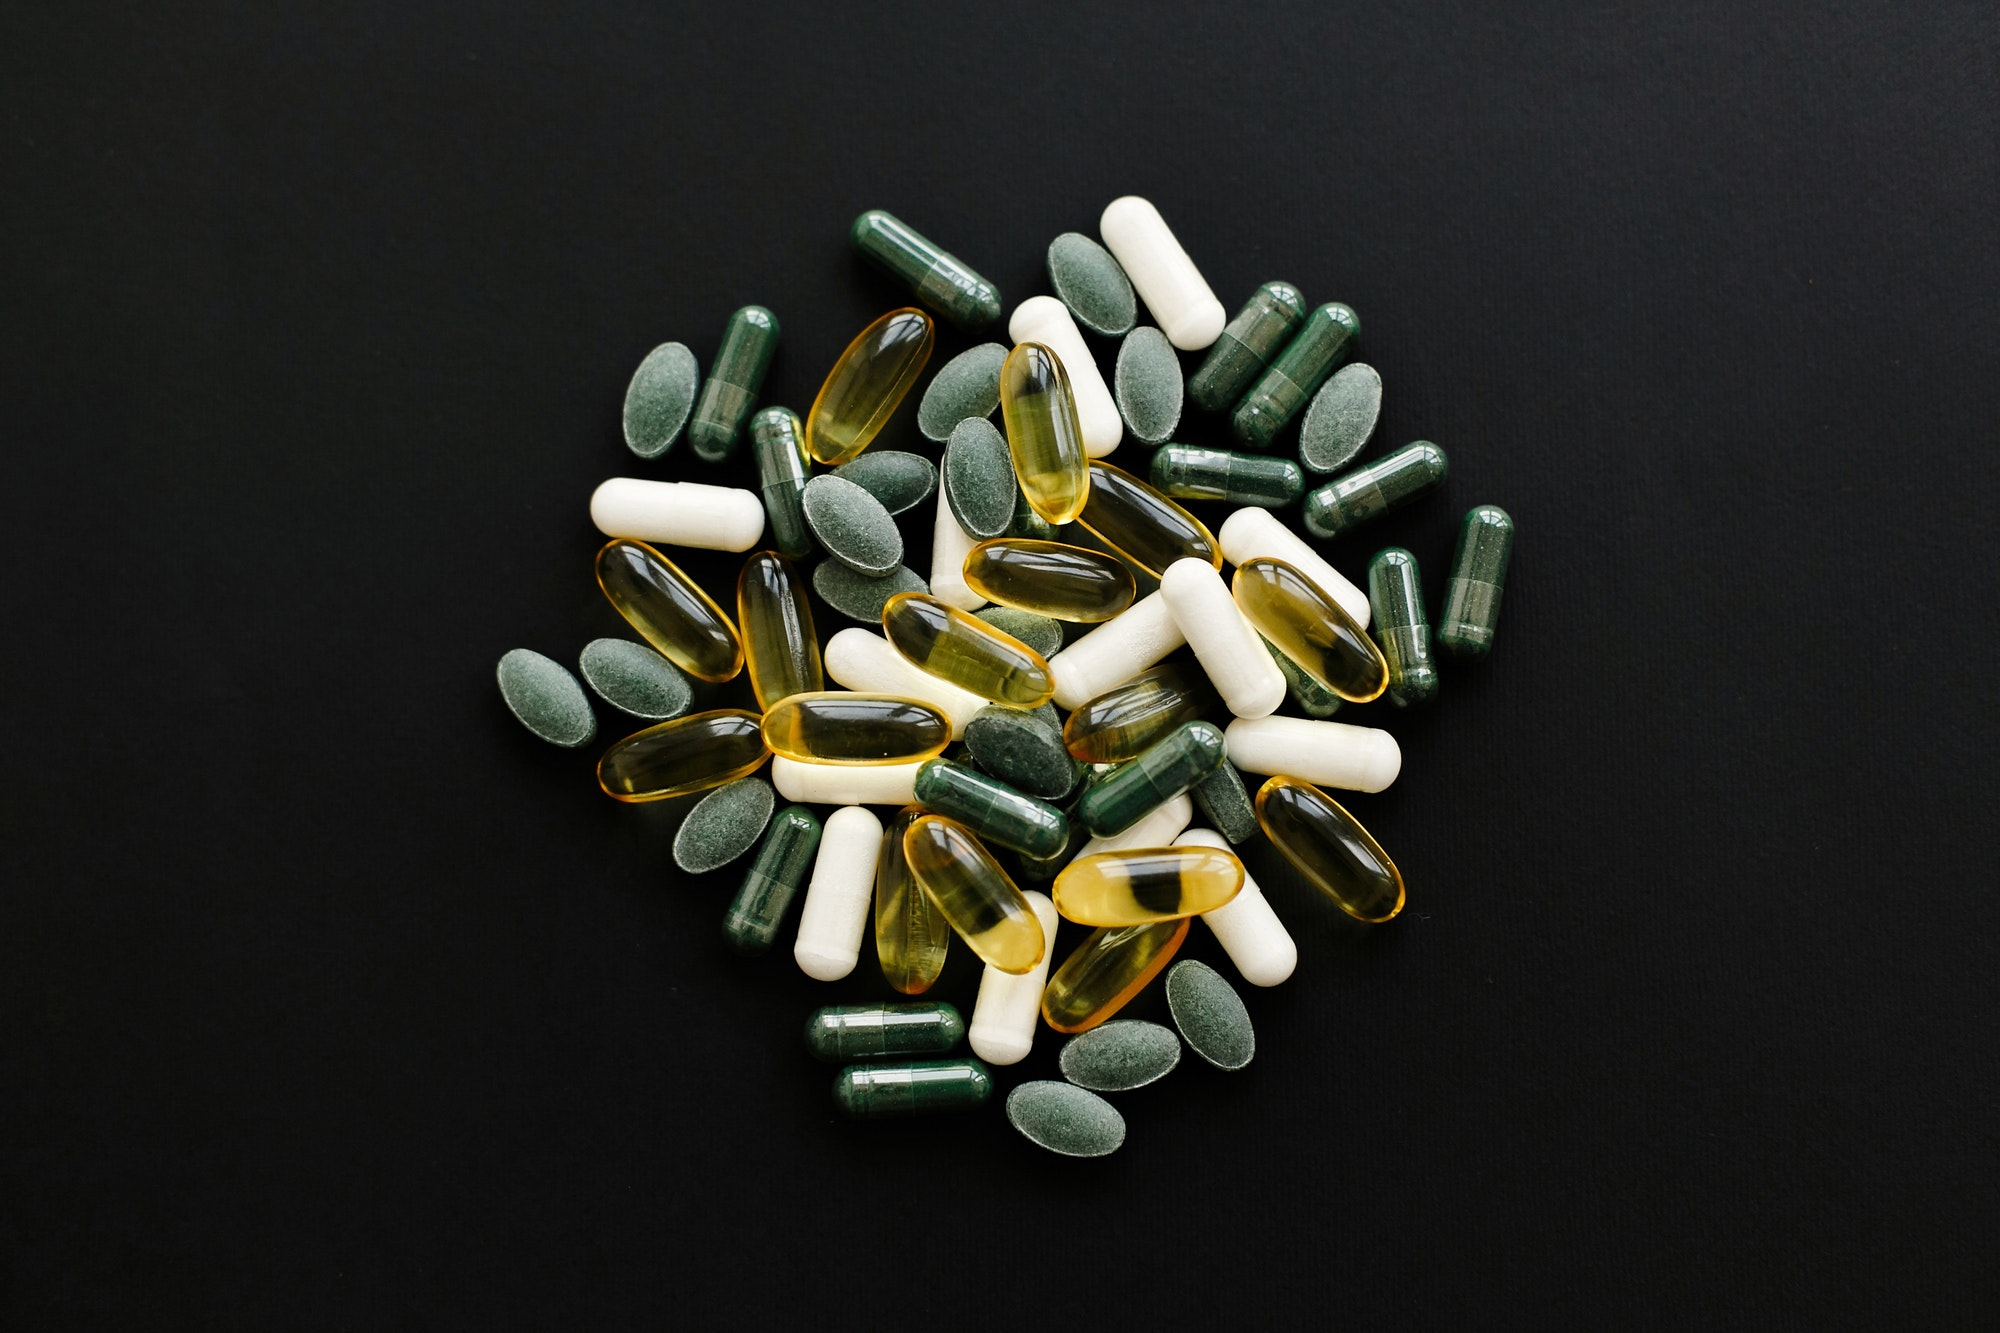 Vitamin nutrient tablets